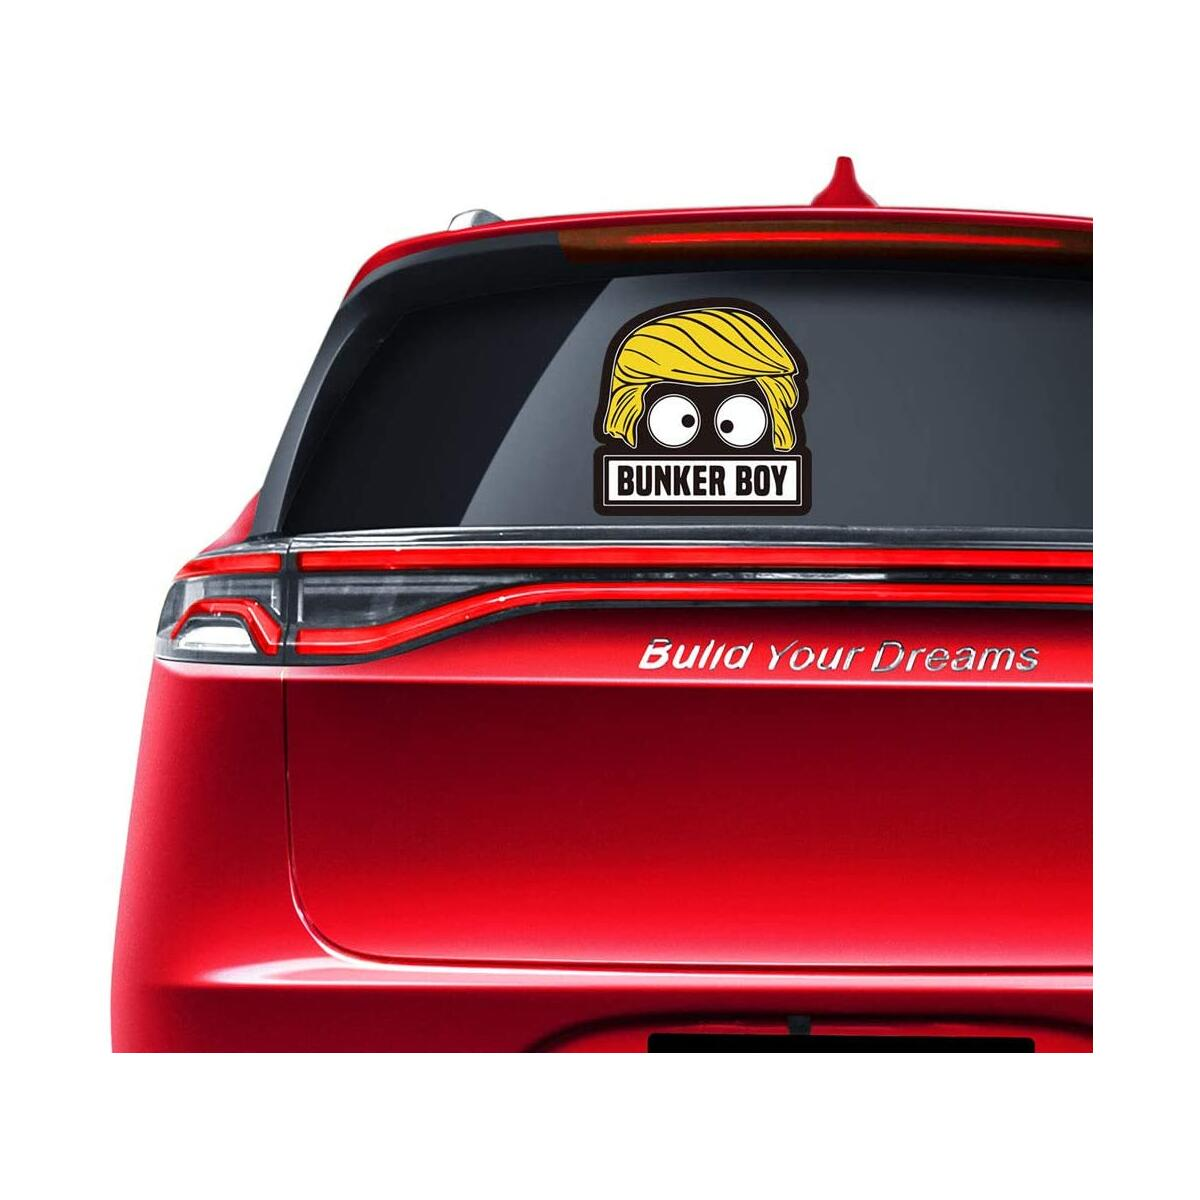 Funny Bunker Boy Trump Sticker - 2 Sets Humorous Anti Trump Bumper Stickers for Laptop Cars Truck Window Wall Home Yard Signs 2020 10''x10''